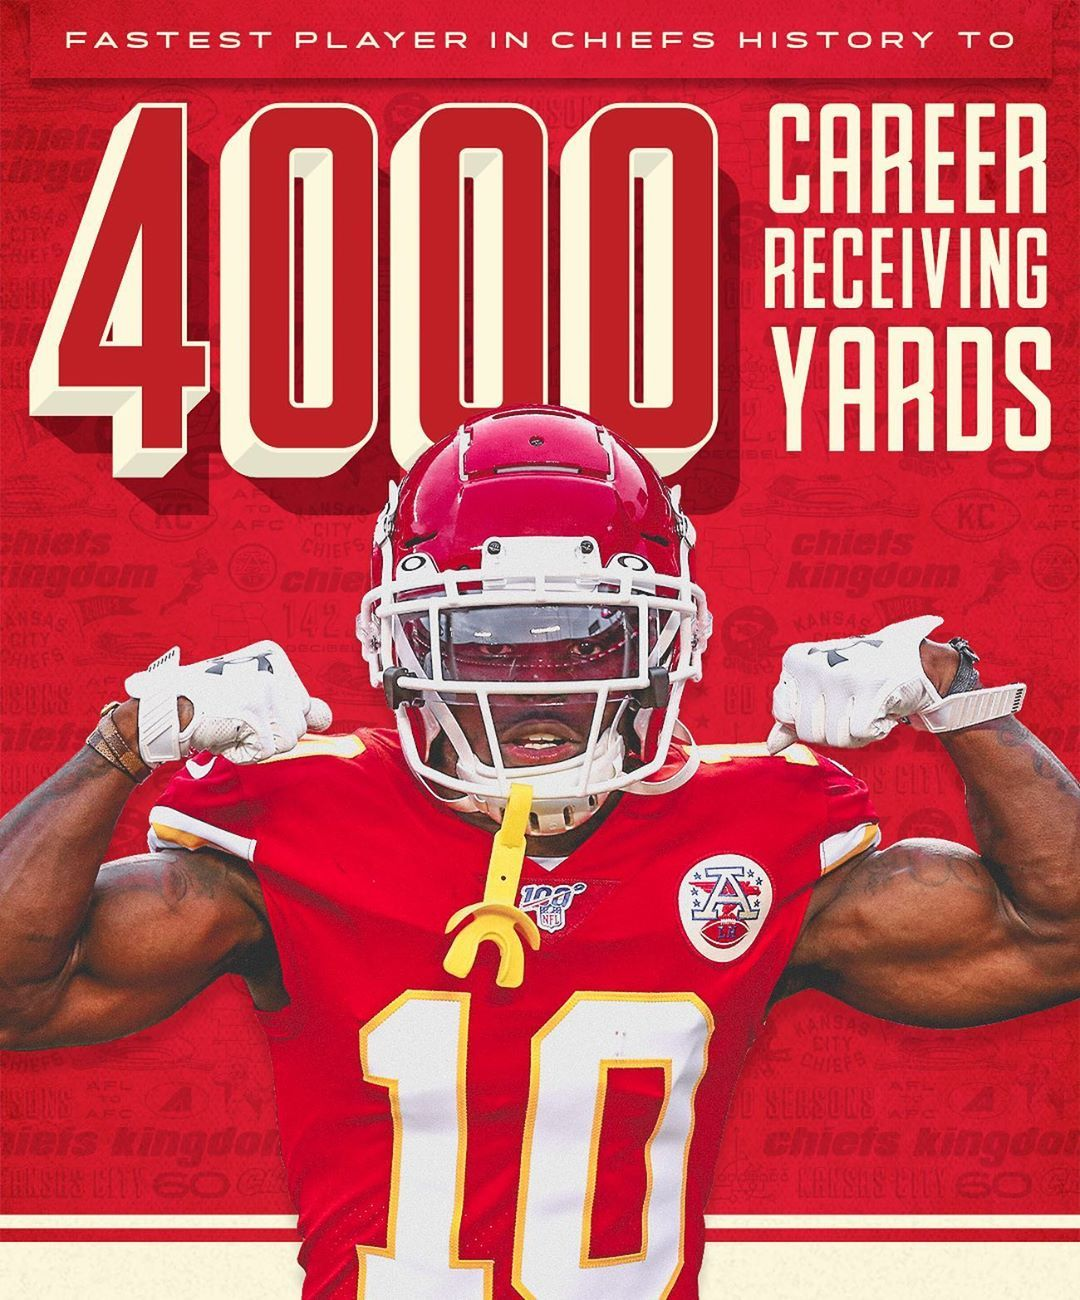 Kansas City Chiefs On Instagram Another Record For The Fastest Man In The Nfl Kansas City Chiefs Football Kansas City Chiefs Logo Kansas City Chiefs